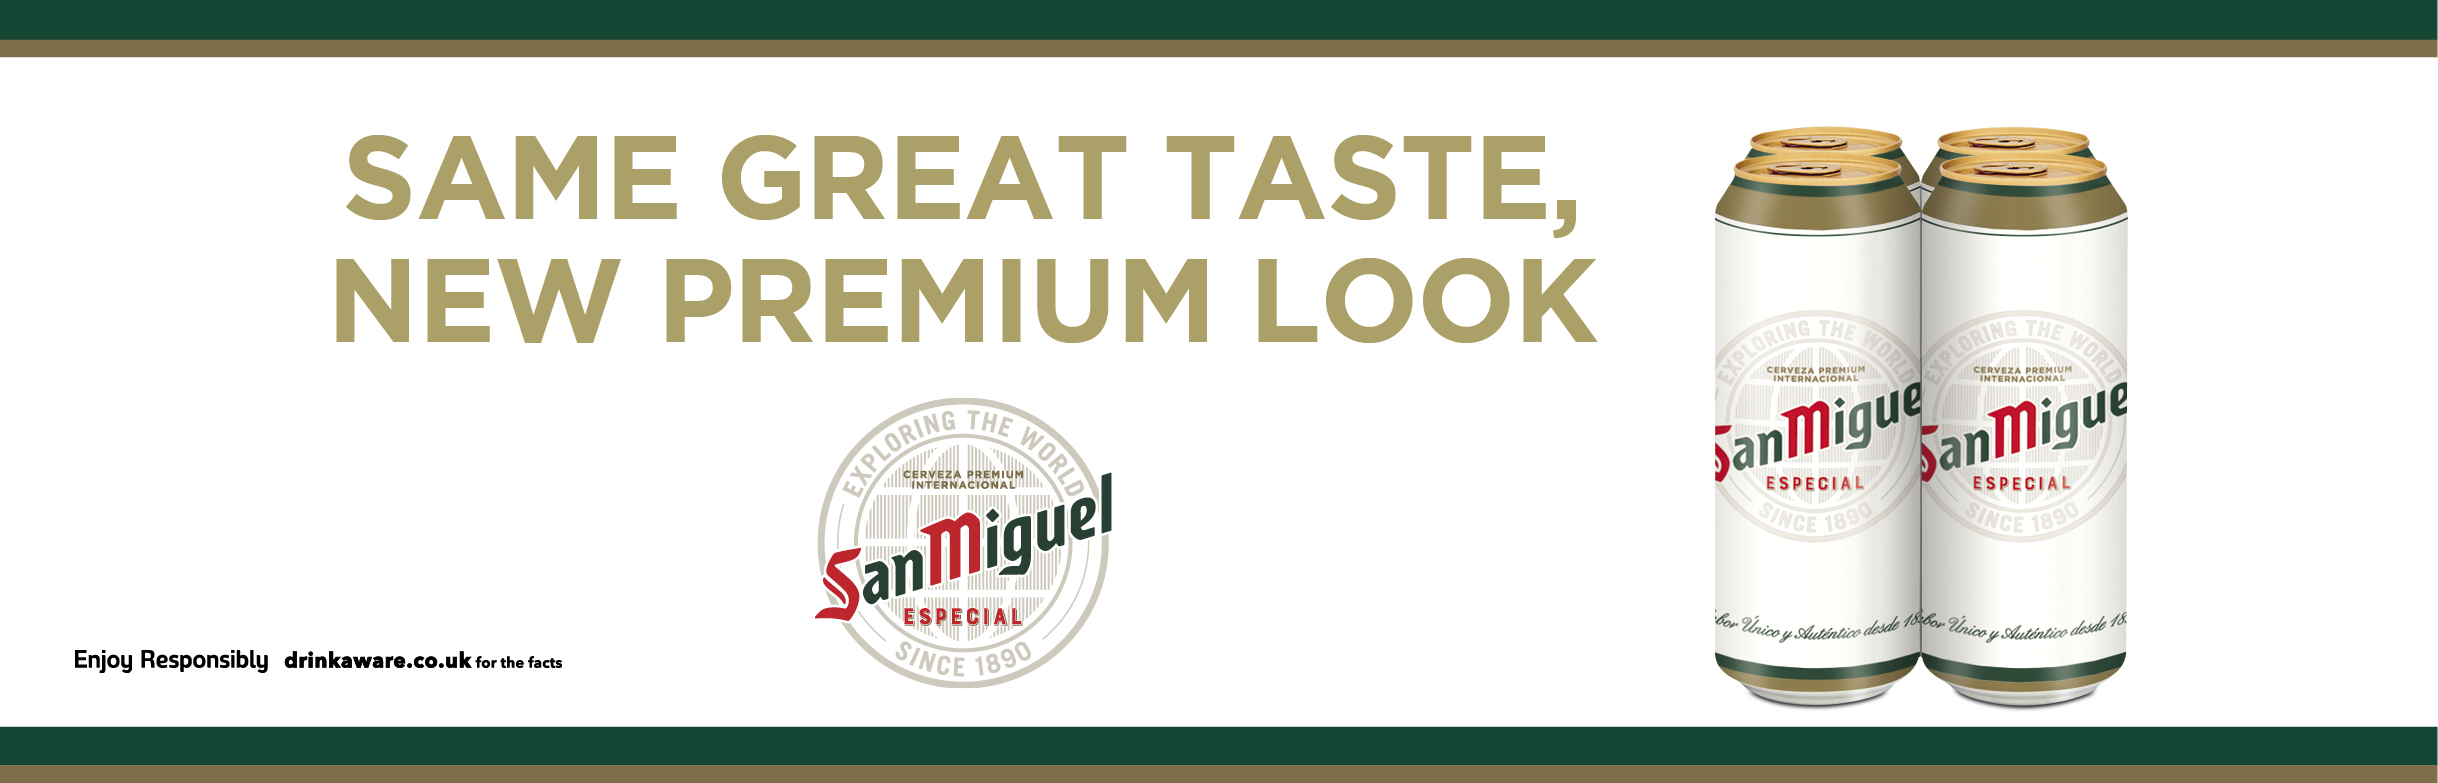 Exploring the world with Sanmiguel